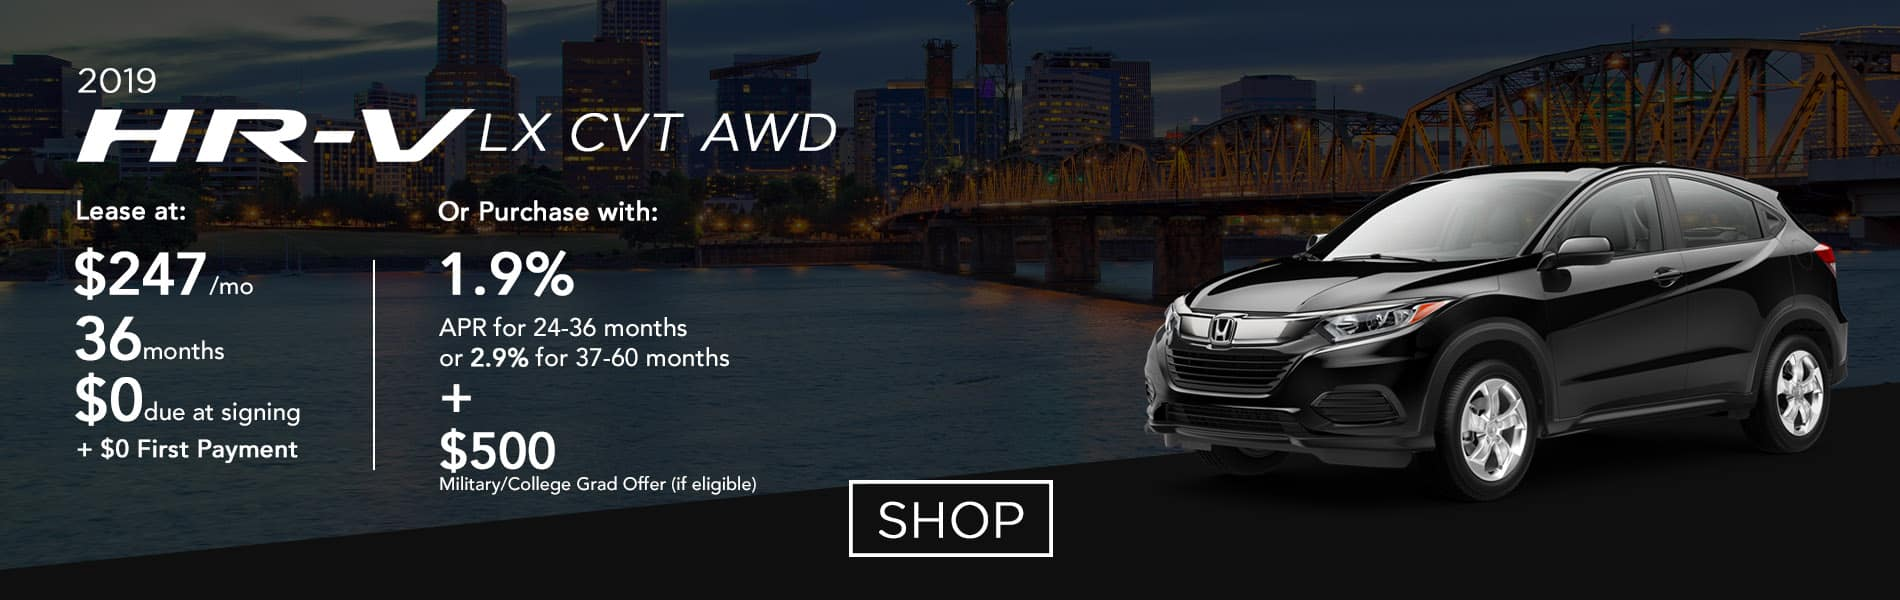 Lease a 2019 HR-V LX CVT AWD for $247 per month or purchase with 1.9% APR up to 36 months